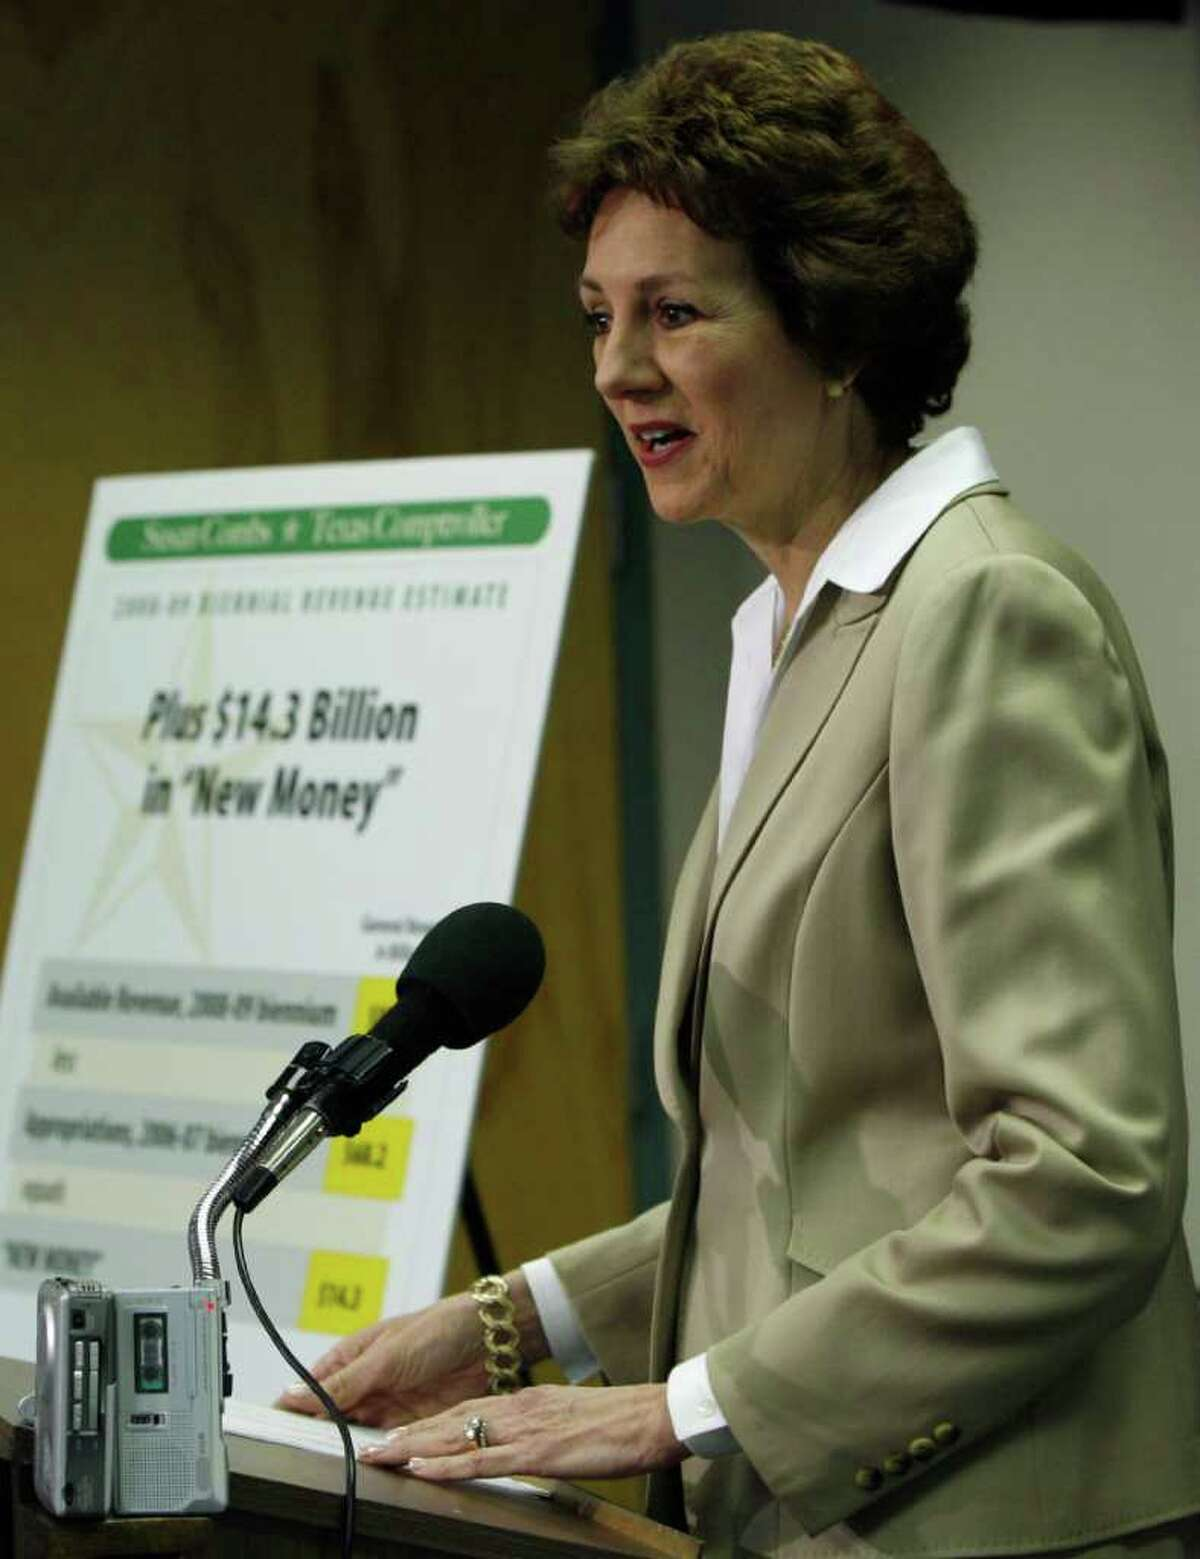 Texas Comptroller Susan Combs speaks during a news conference Monday, Jan. 8, 2007, in Austin, Texas. She announced that Texas has $14.3 billion in new money to spend in the coming two years but some economic sectors are cooling and lawmakers should be cautious in crafting a budget.